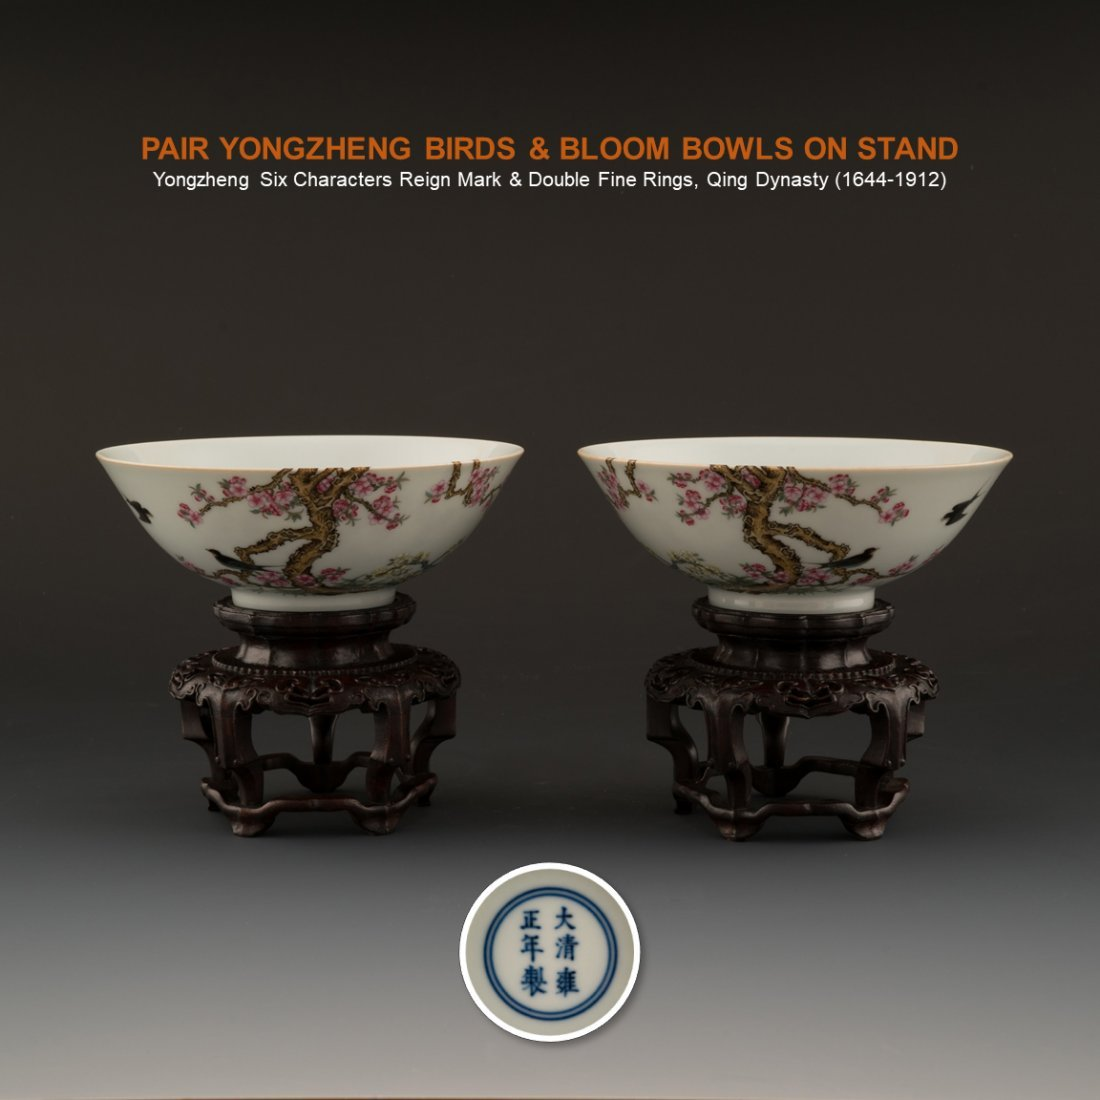 PAIR YONGZHENG BIRDS & BLOOM BOWLS ON STAND